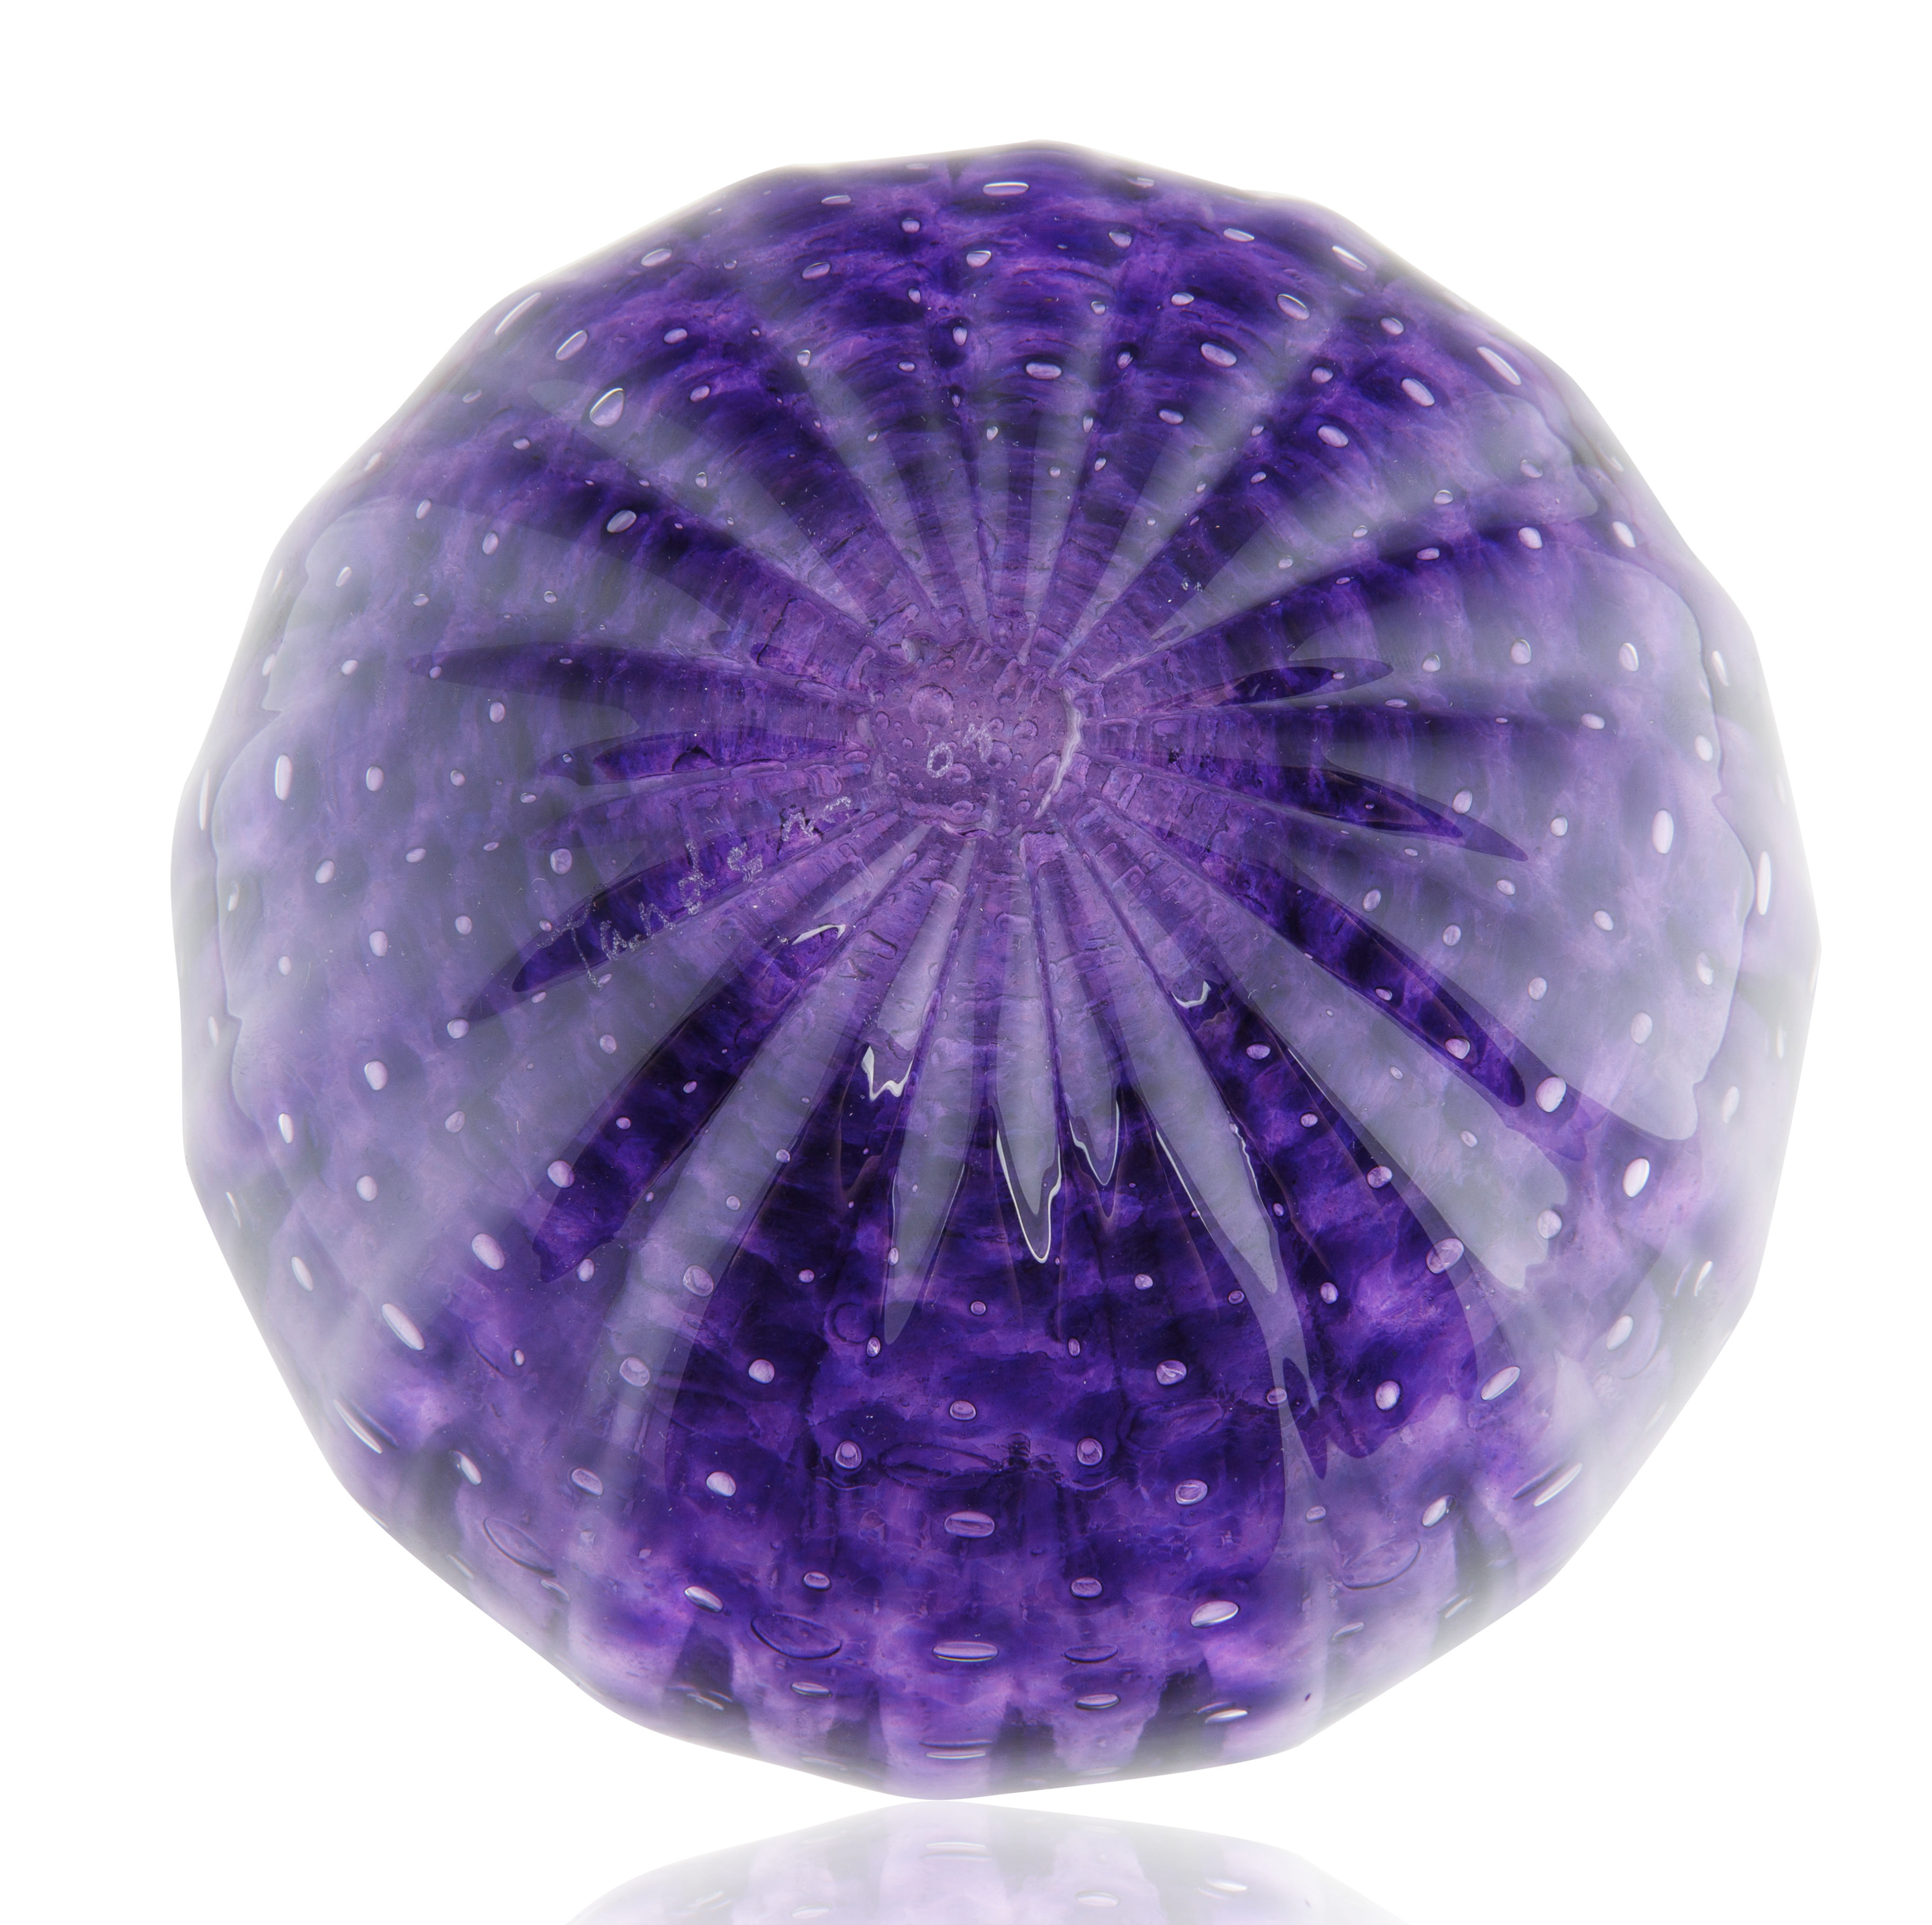 MOST LIKELY MURANO ITALIAN GLASS ROUND VASE - Image 3 of 4